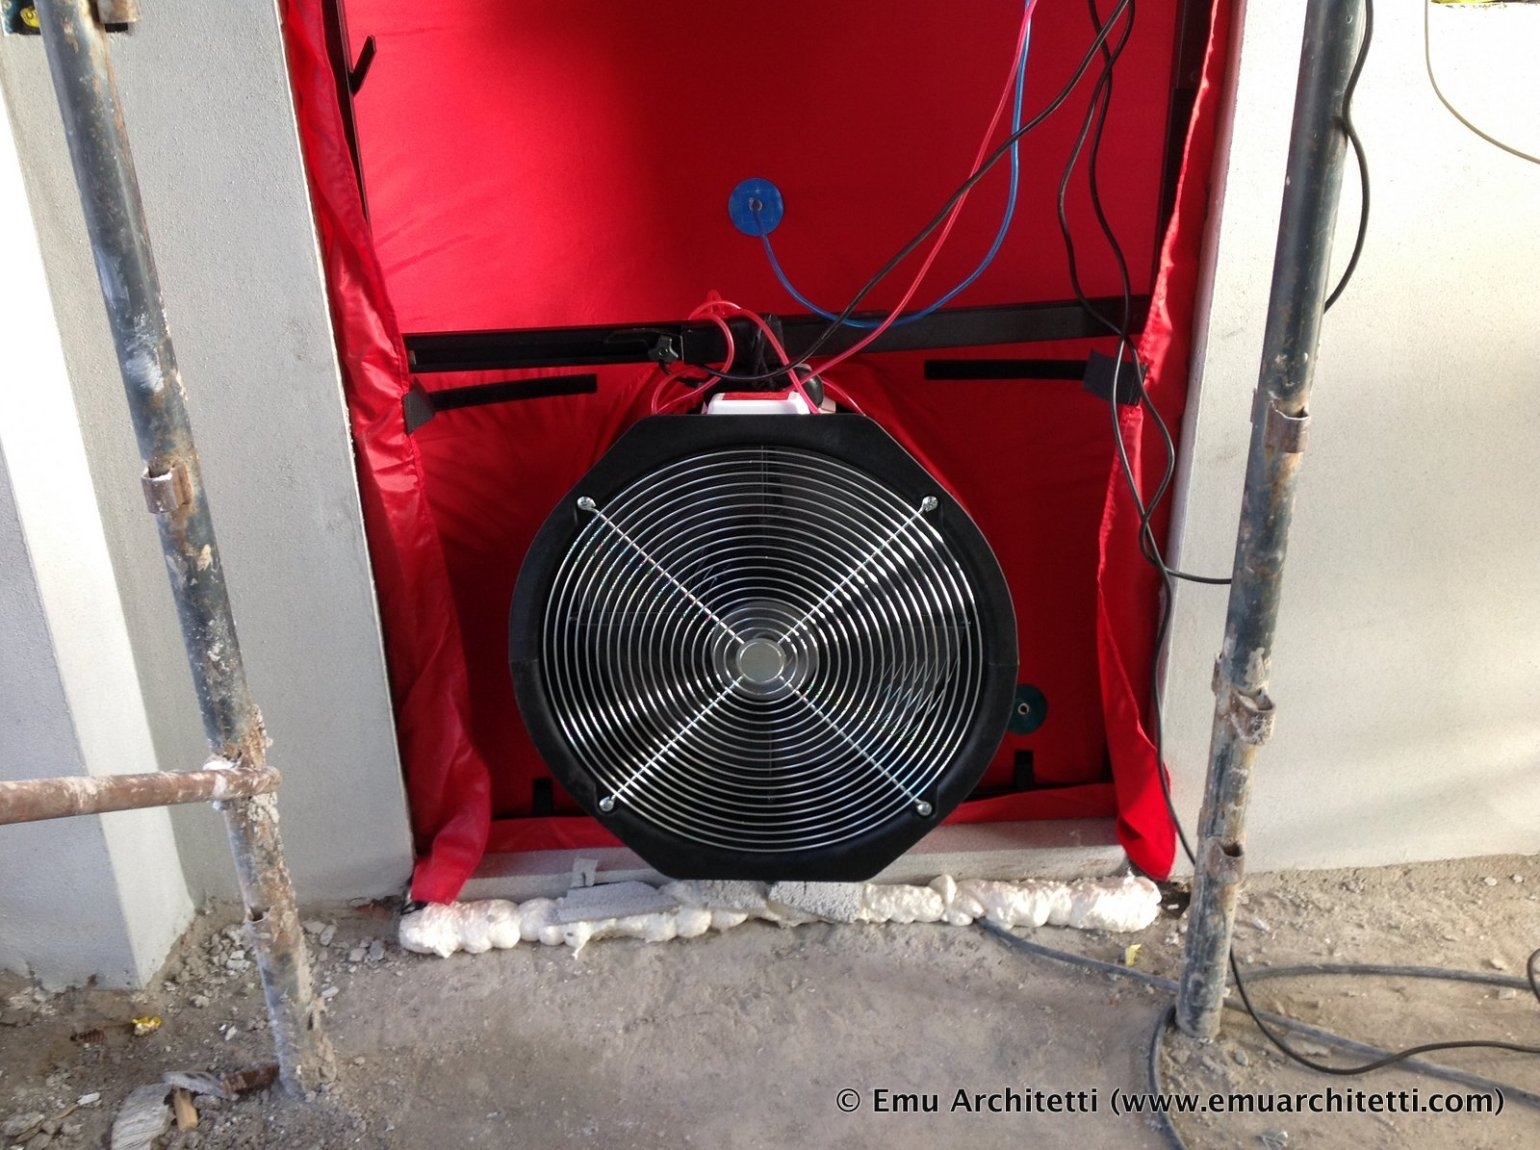 the fan that pushes air in or out of the sealed area - blower door test